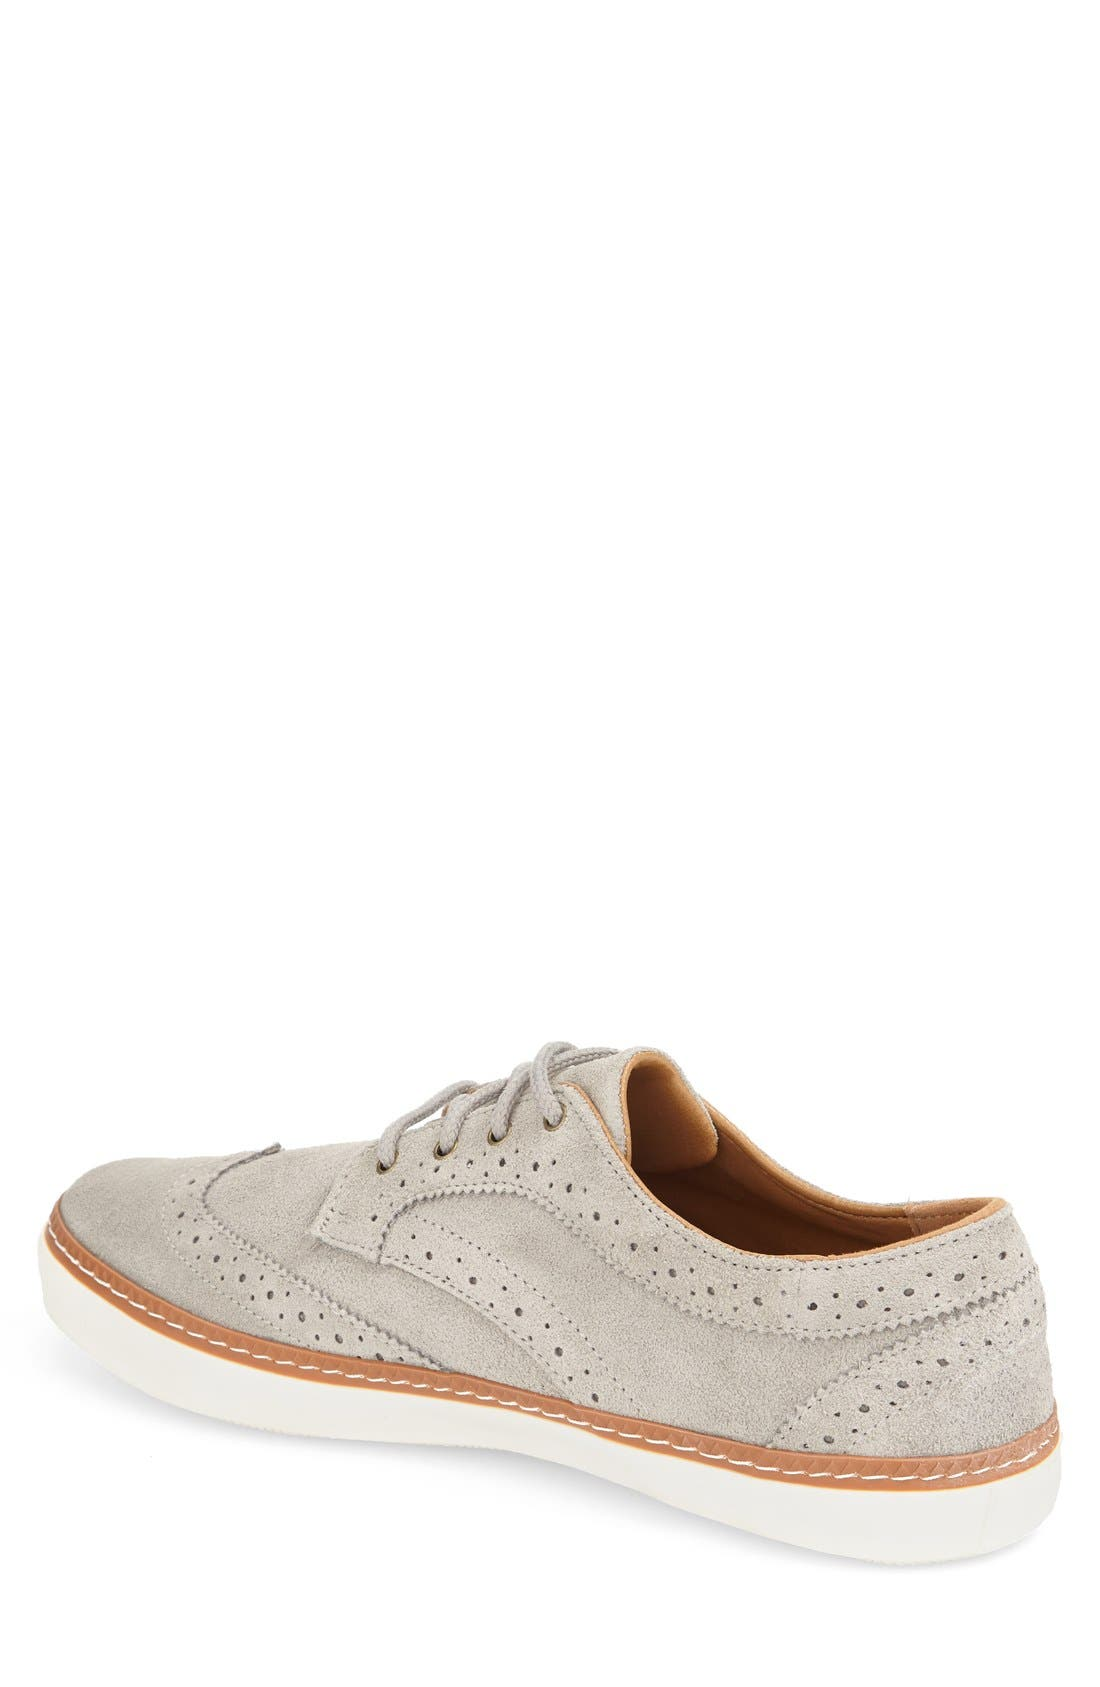 'Novello' Wingtip Sneaker,                             Alternate thumbnail 3, color,                             020